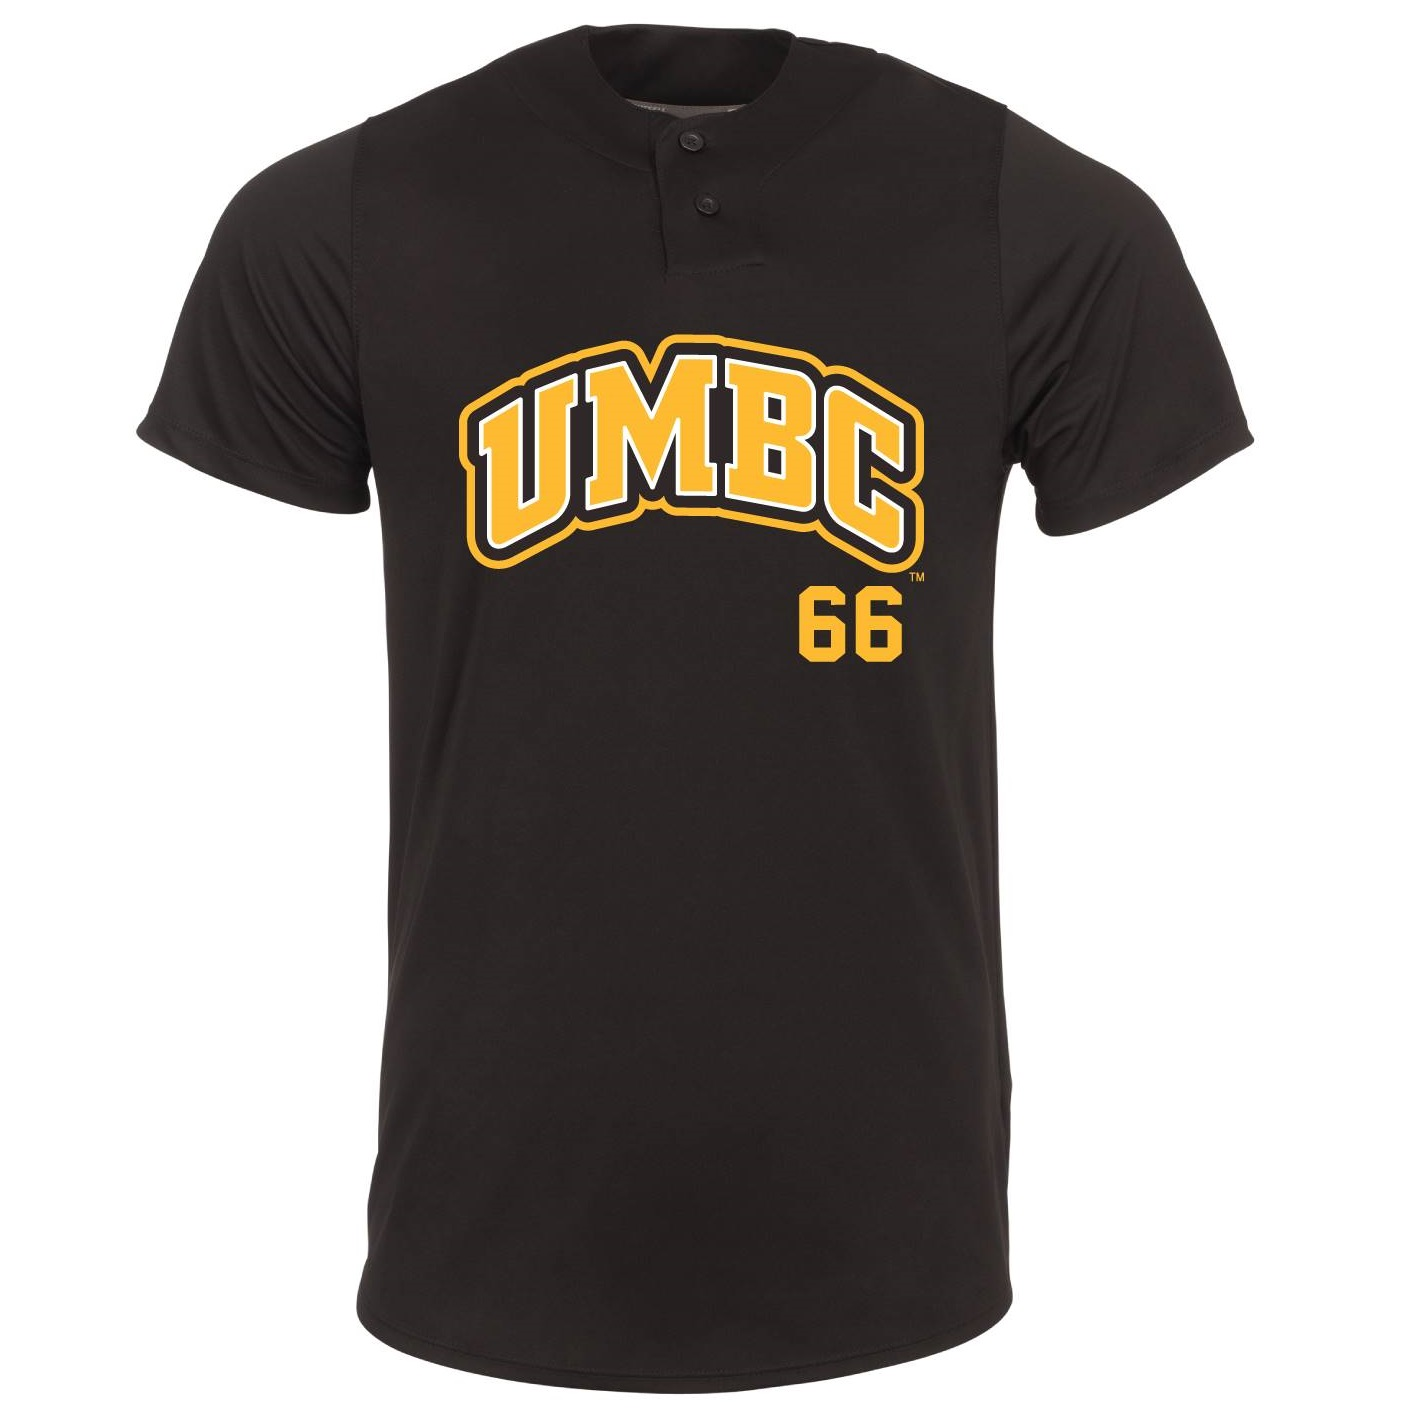 4a9eb24397d8 Image For JERSEY  BASEBALL UMBC PLACKET